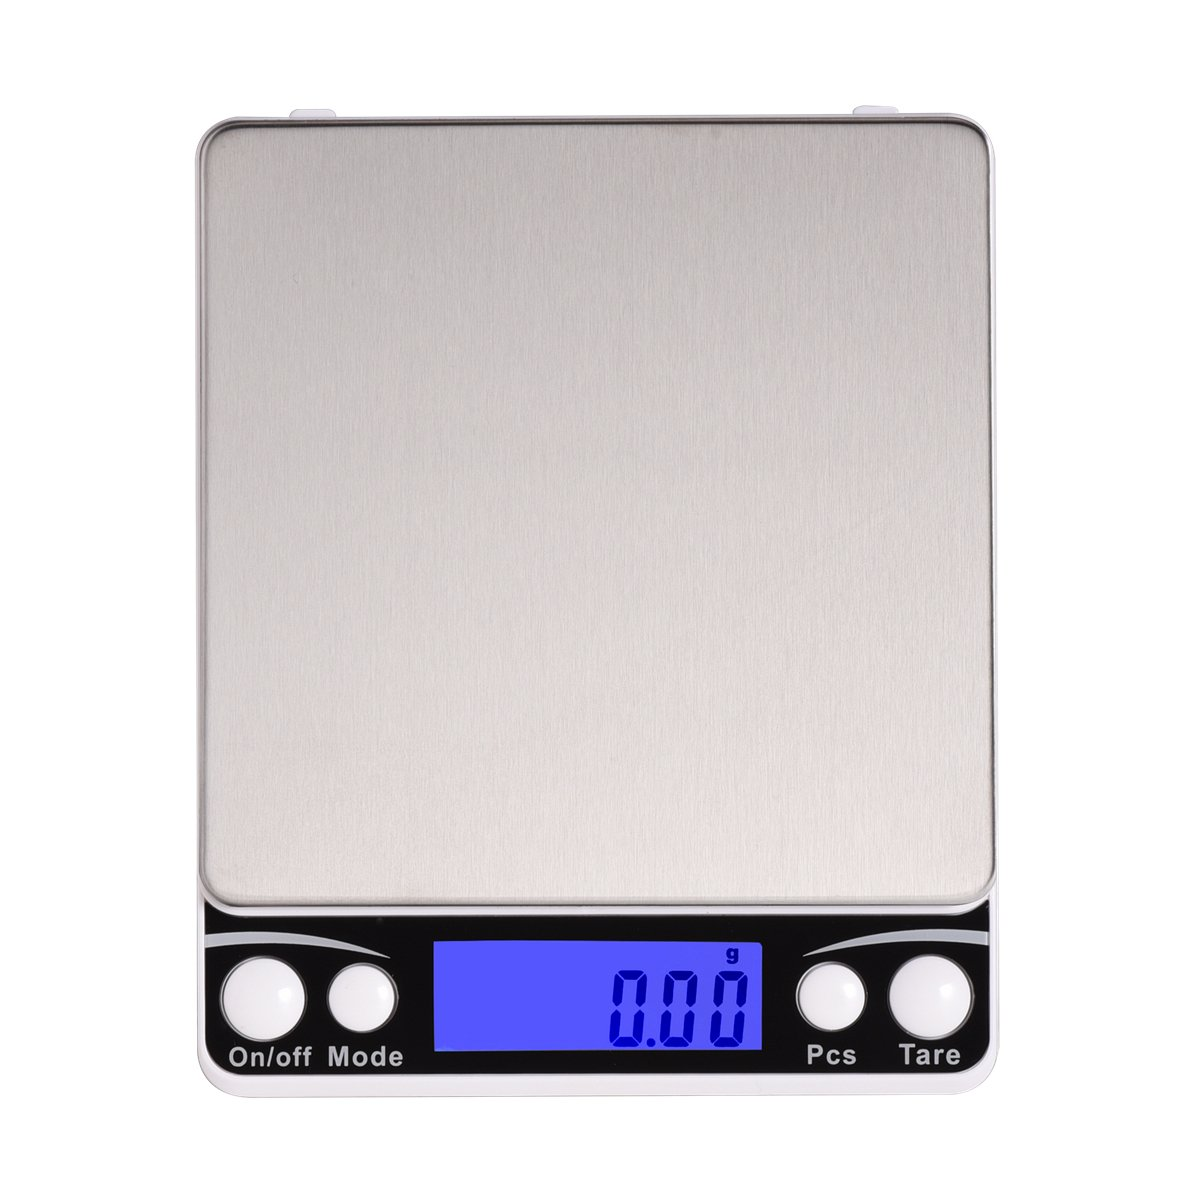 Xornis 500g x 0.01g Digital Pocket Scales Portable High Precision Jewelry Food Coffee Tea Kitchen Scale with Stainless Steel Platform, Back-Lit LCD Display, Tare and PCS Features (2 Trays Included)